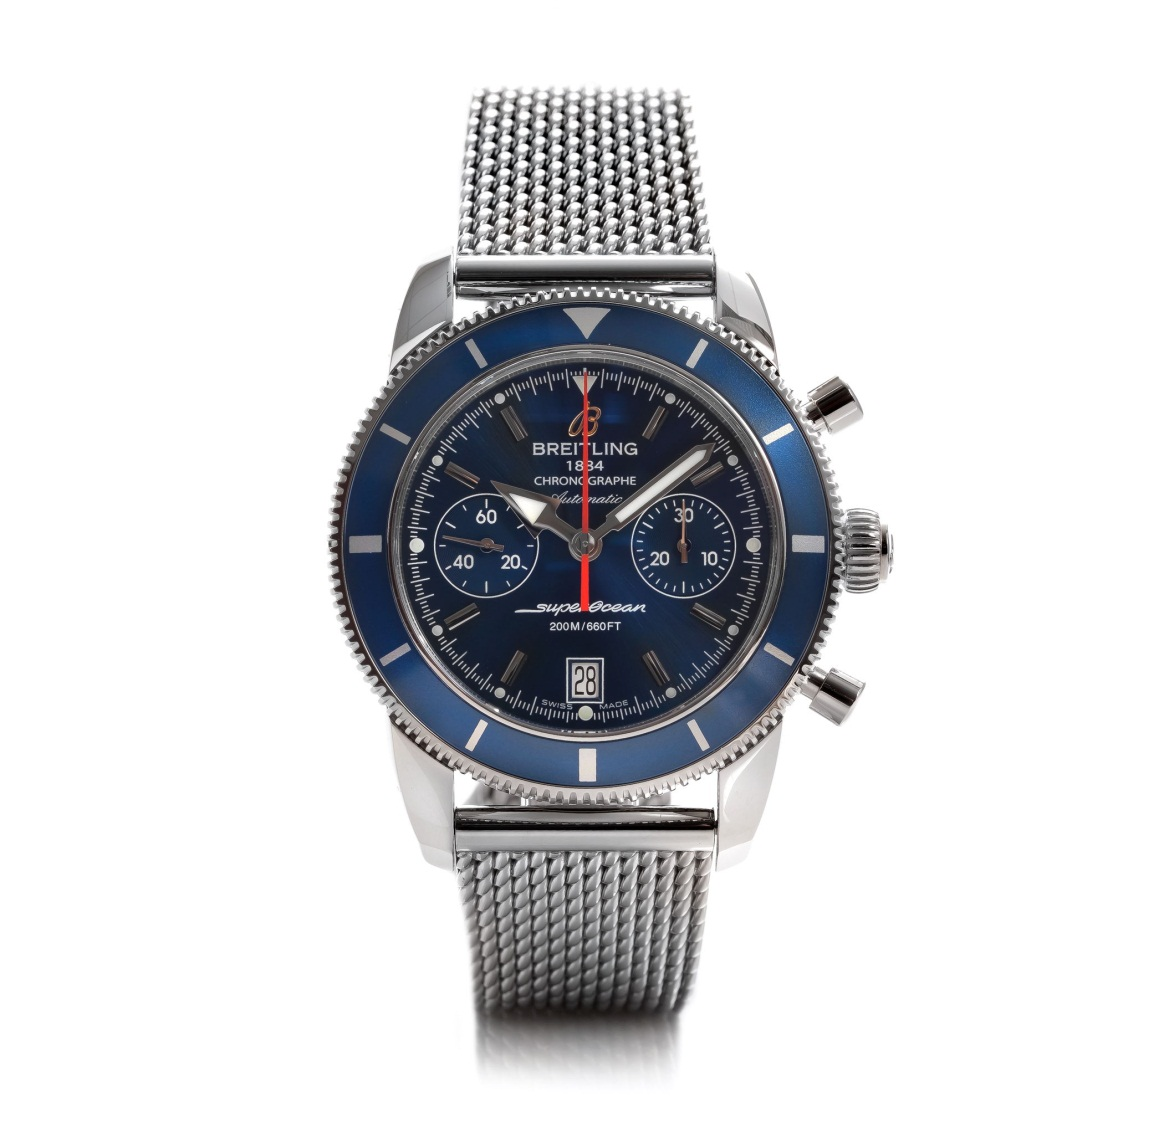 Breitling SuperOcean Heritage 3 Top of the Range Diving Watches for Serious Divers.